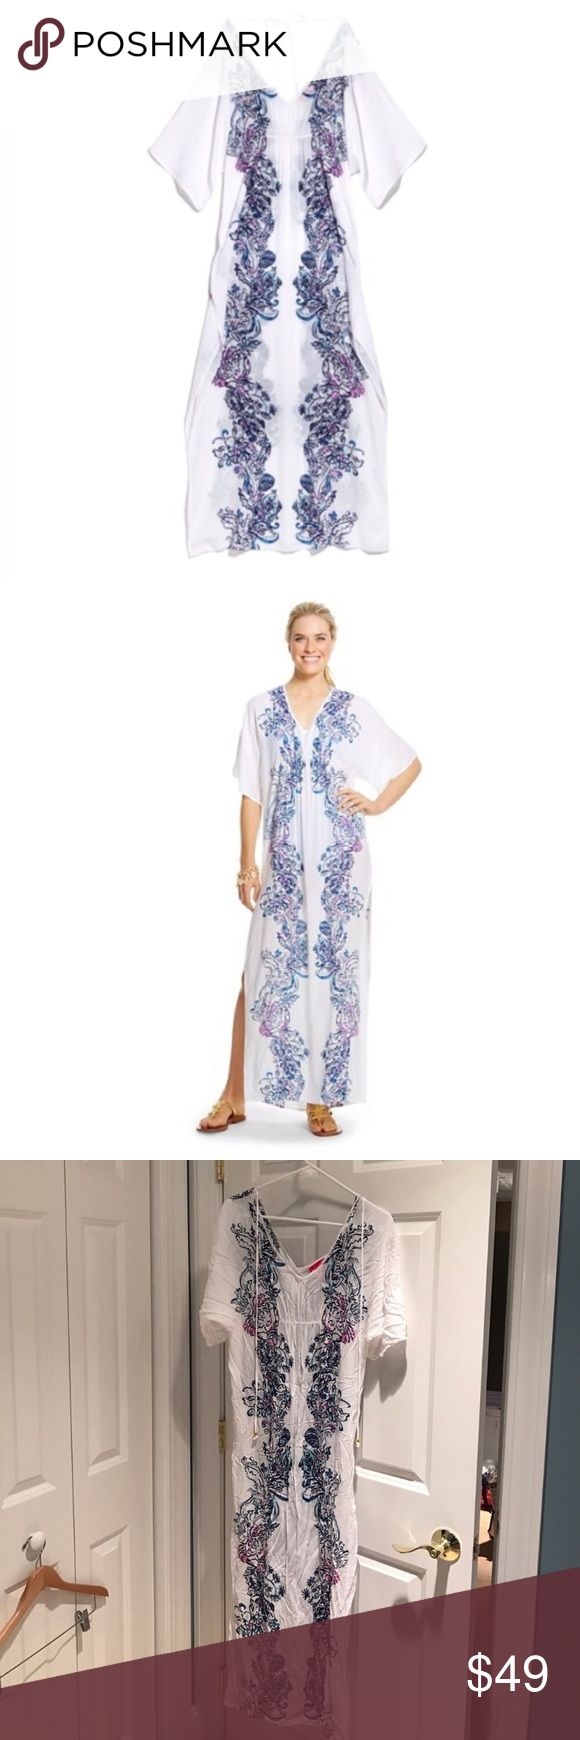 Lilly Pulitzer for Target Caftan/Beach Cover Up XS Lilly Pulitzer for Target Caftan/Beach Cover Up XS.  This one is sold out everywhere. Near new condition this one was washed once but never worn.  Runs large. Would fit up to probably a size medium. Lilly Pulitzer for Target Swim Coverups